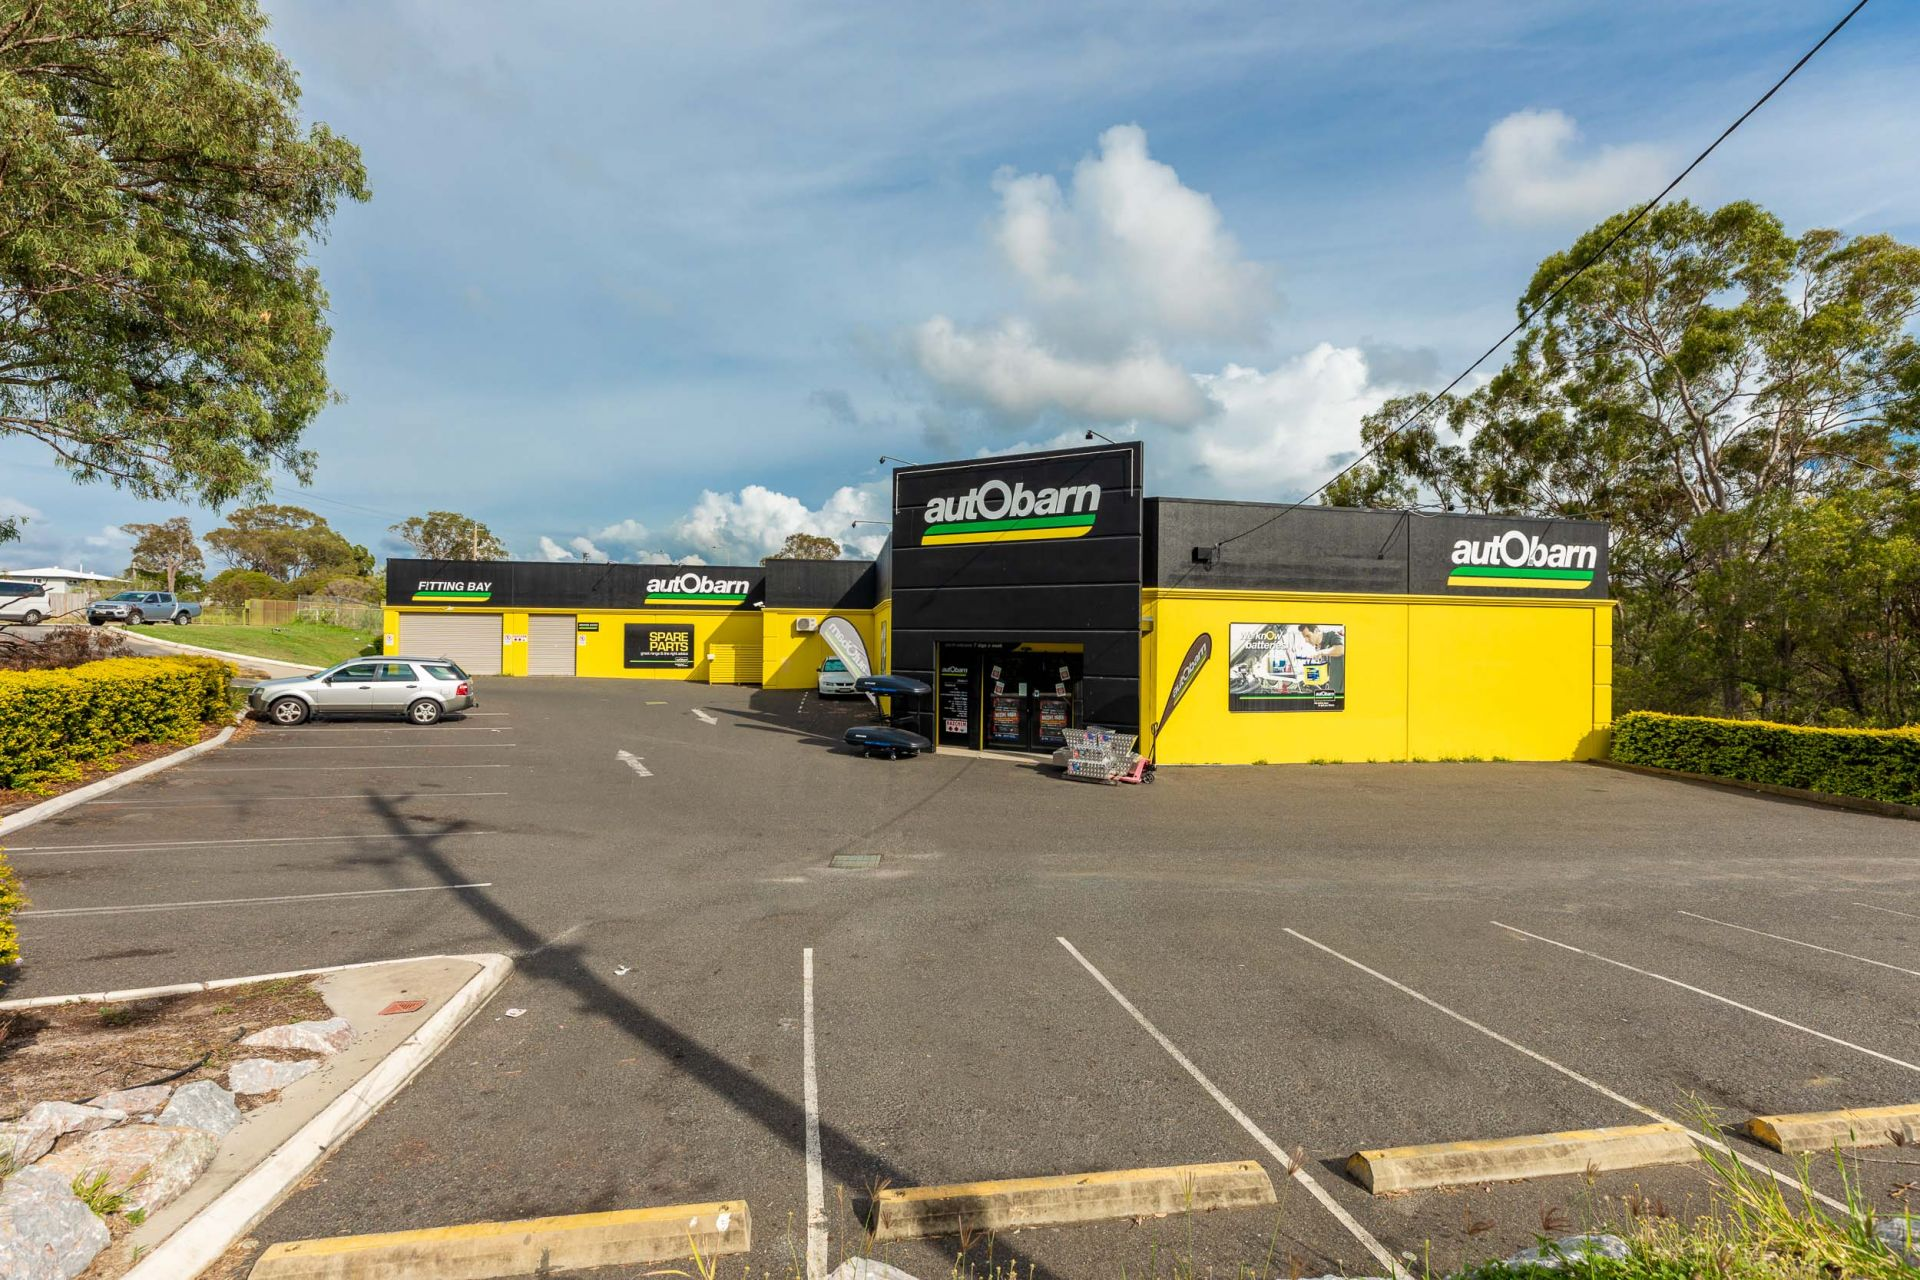 UNDER CONTRACT. Longstanding National Tenant 'Autobarn' - Immediate Liquidation